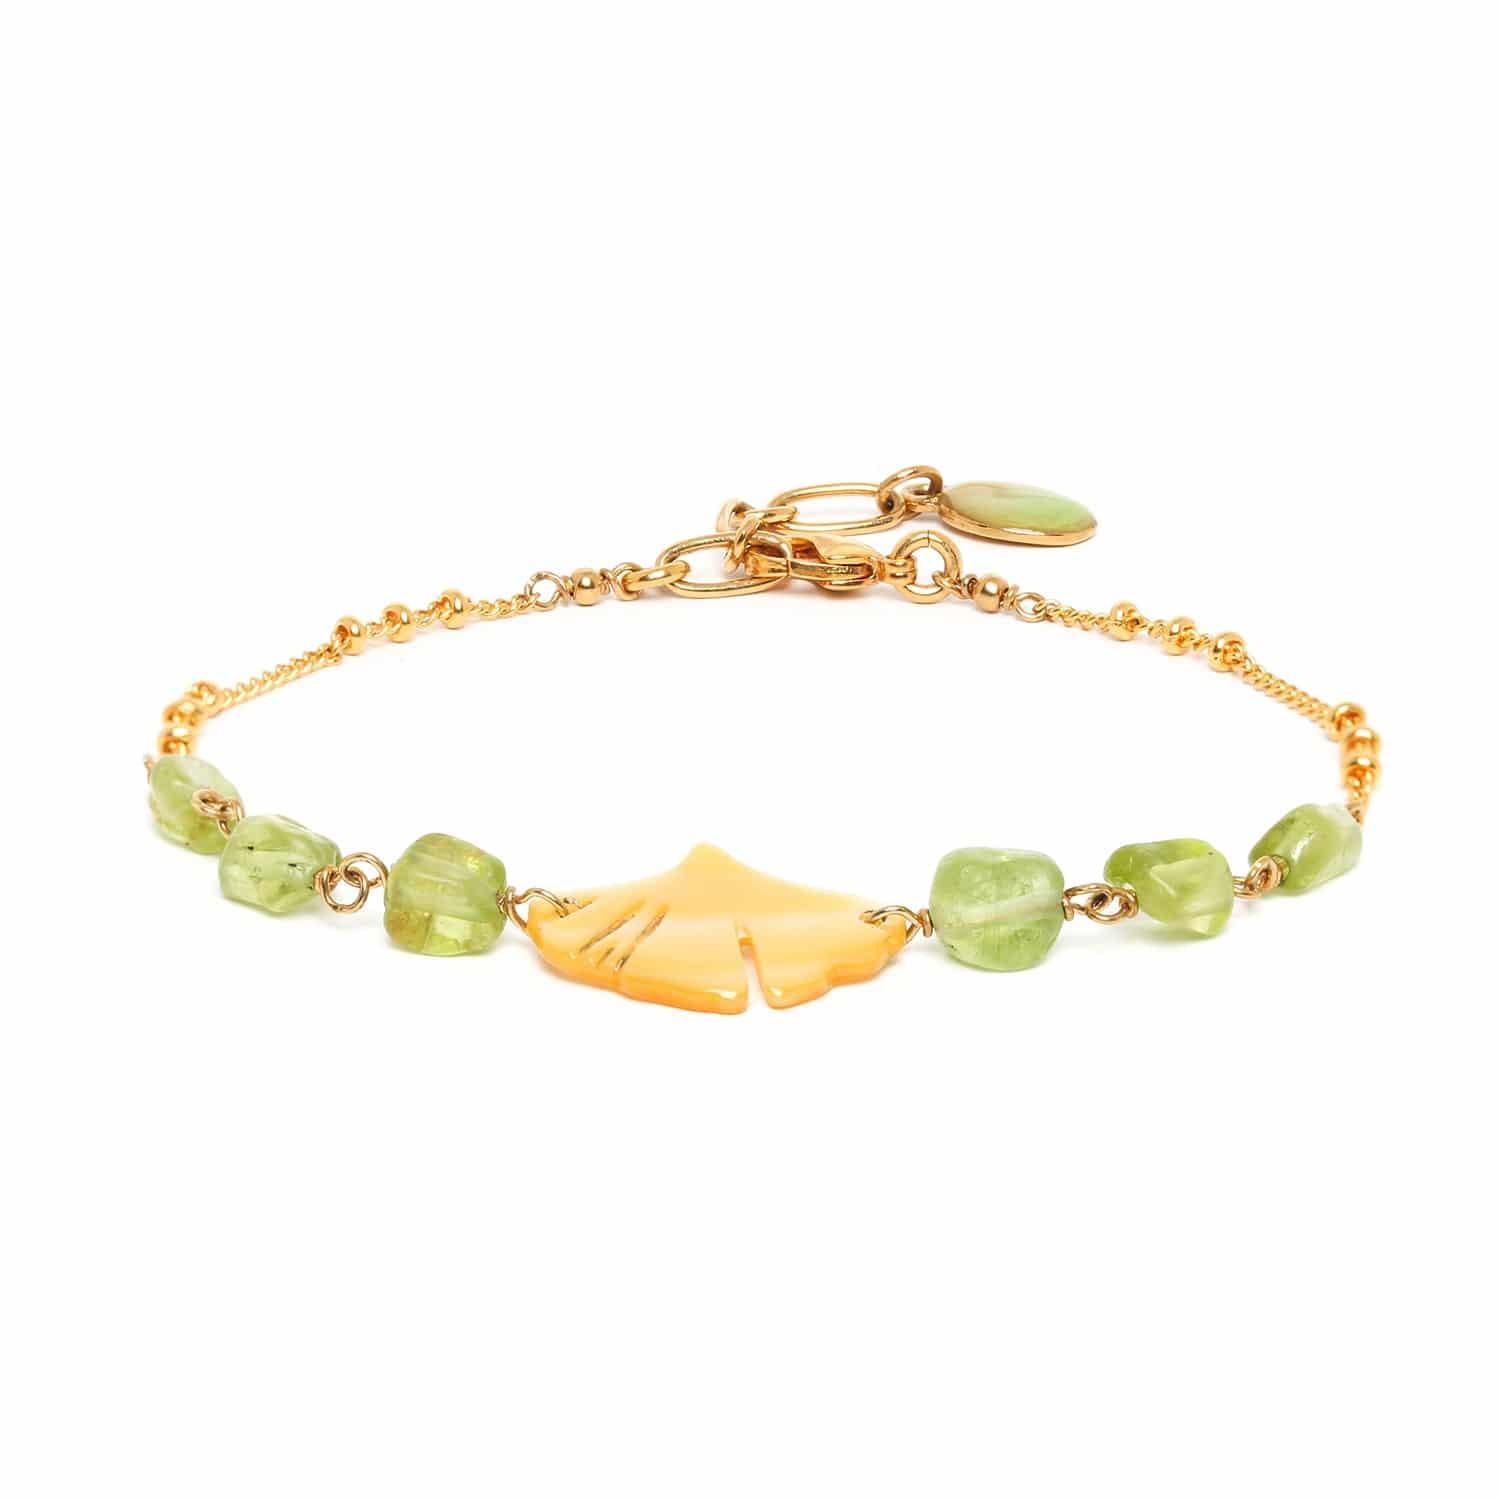 GINKGO  peridot bracelet with chain